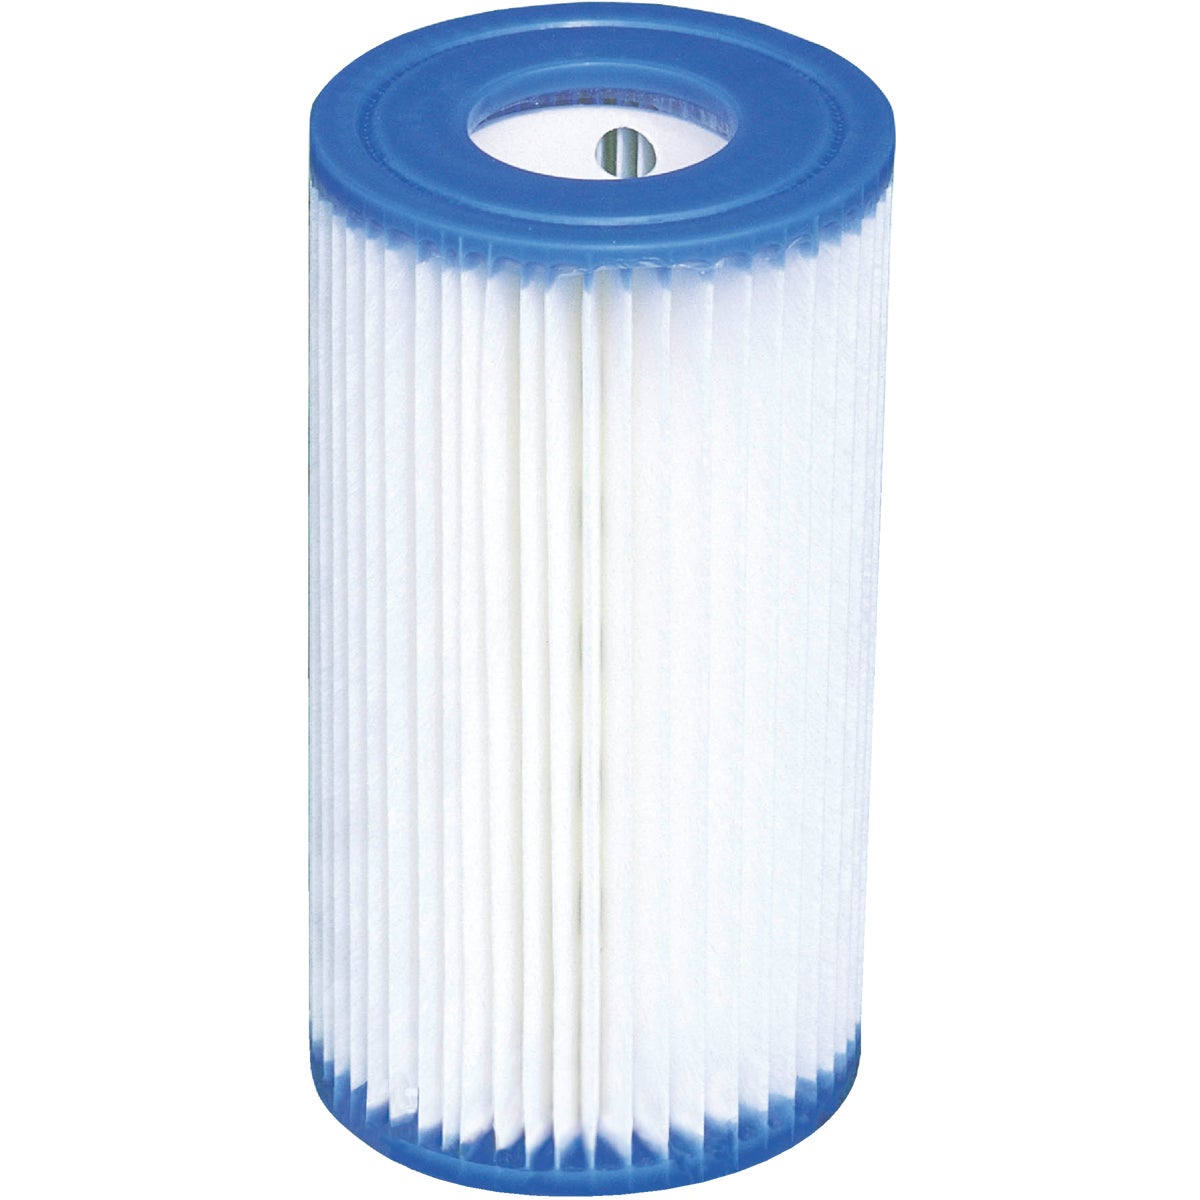 4-1/4X8 FILTER CARTRIDGE - 29000E by Intex Recreation